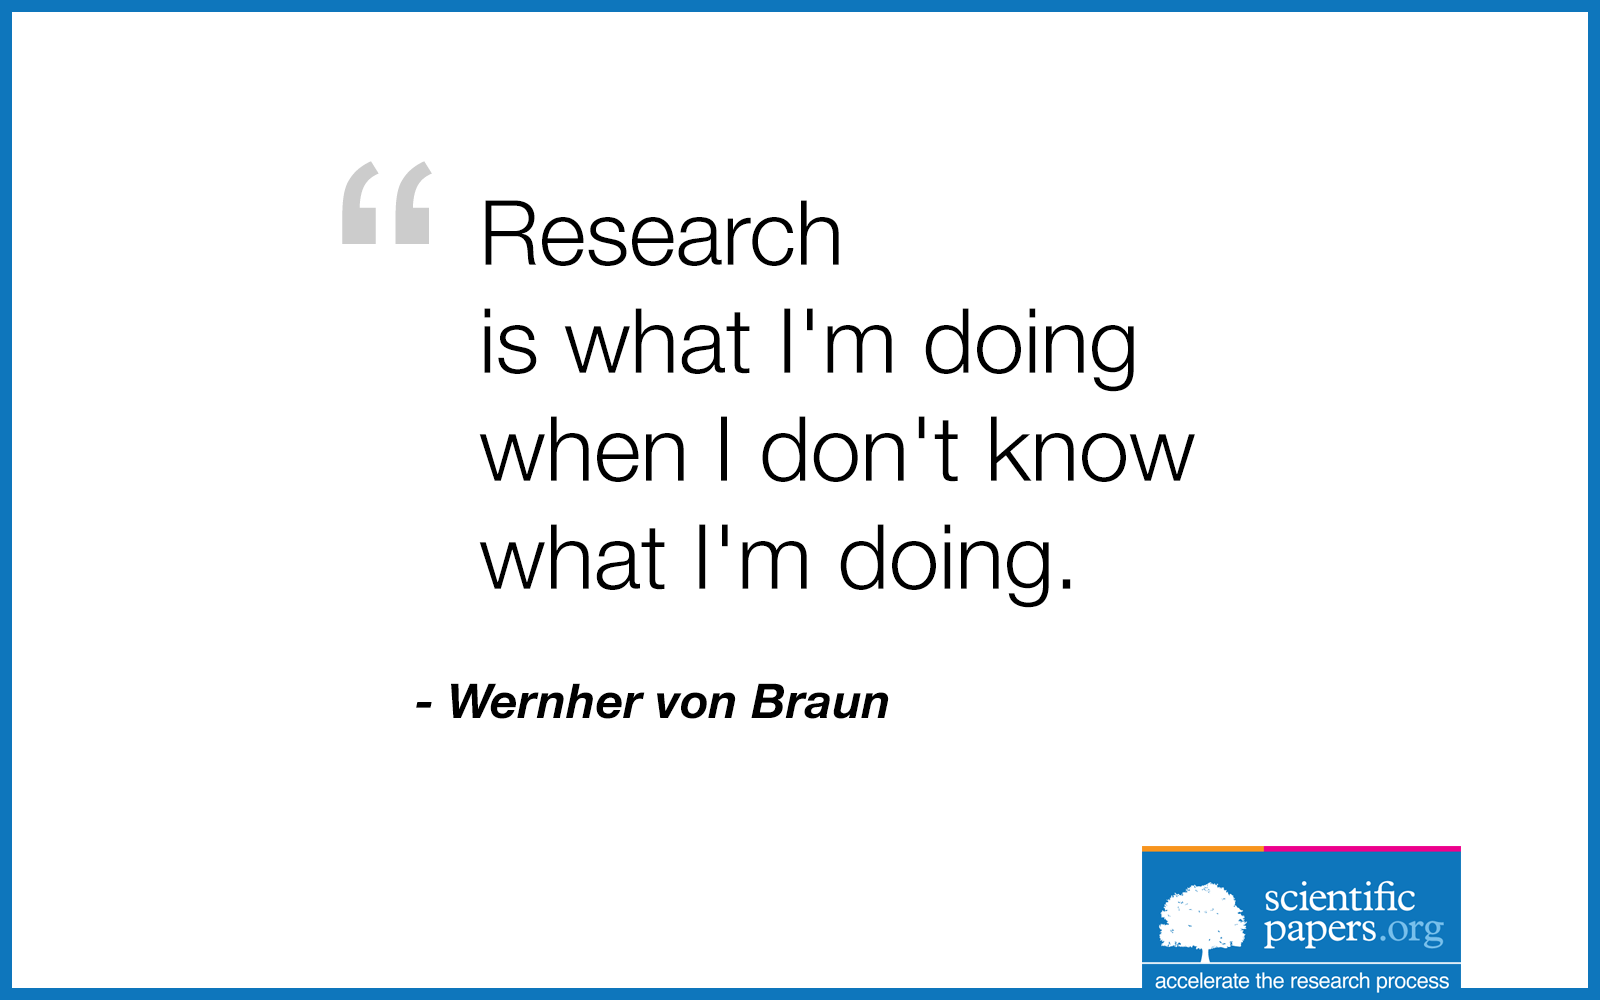 Quotes On Research Research Is What I'm Doing When I Don't Know What I'm Doing